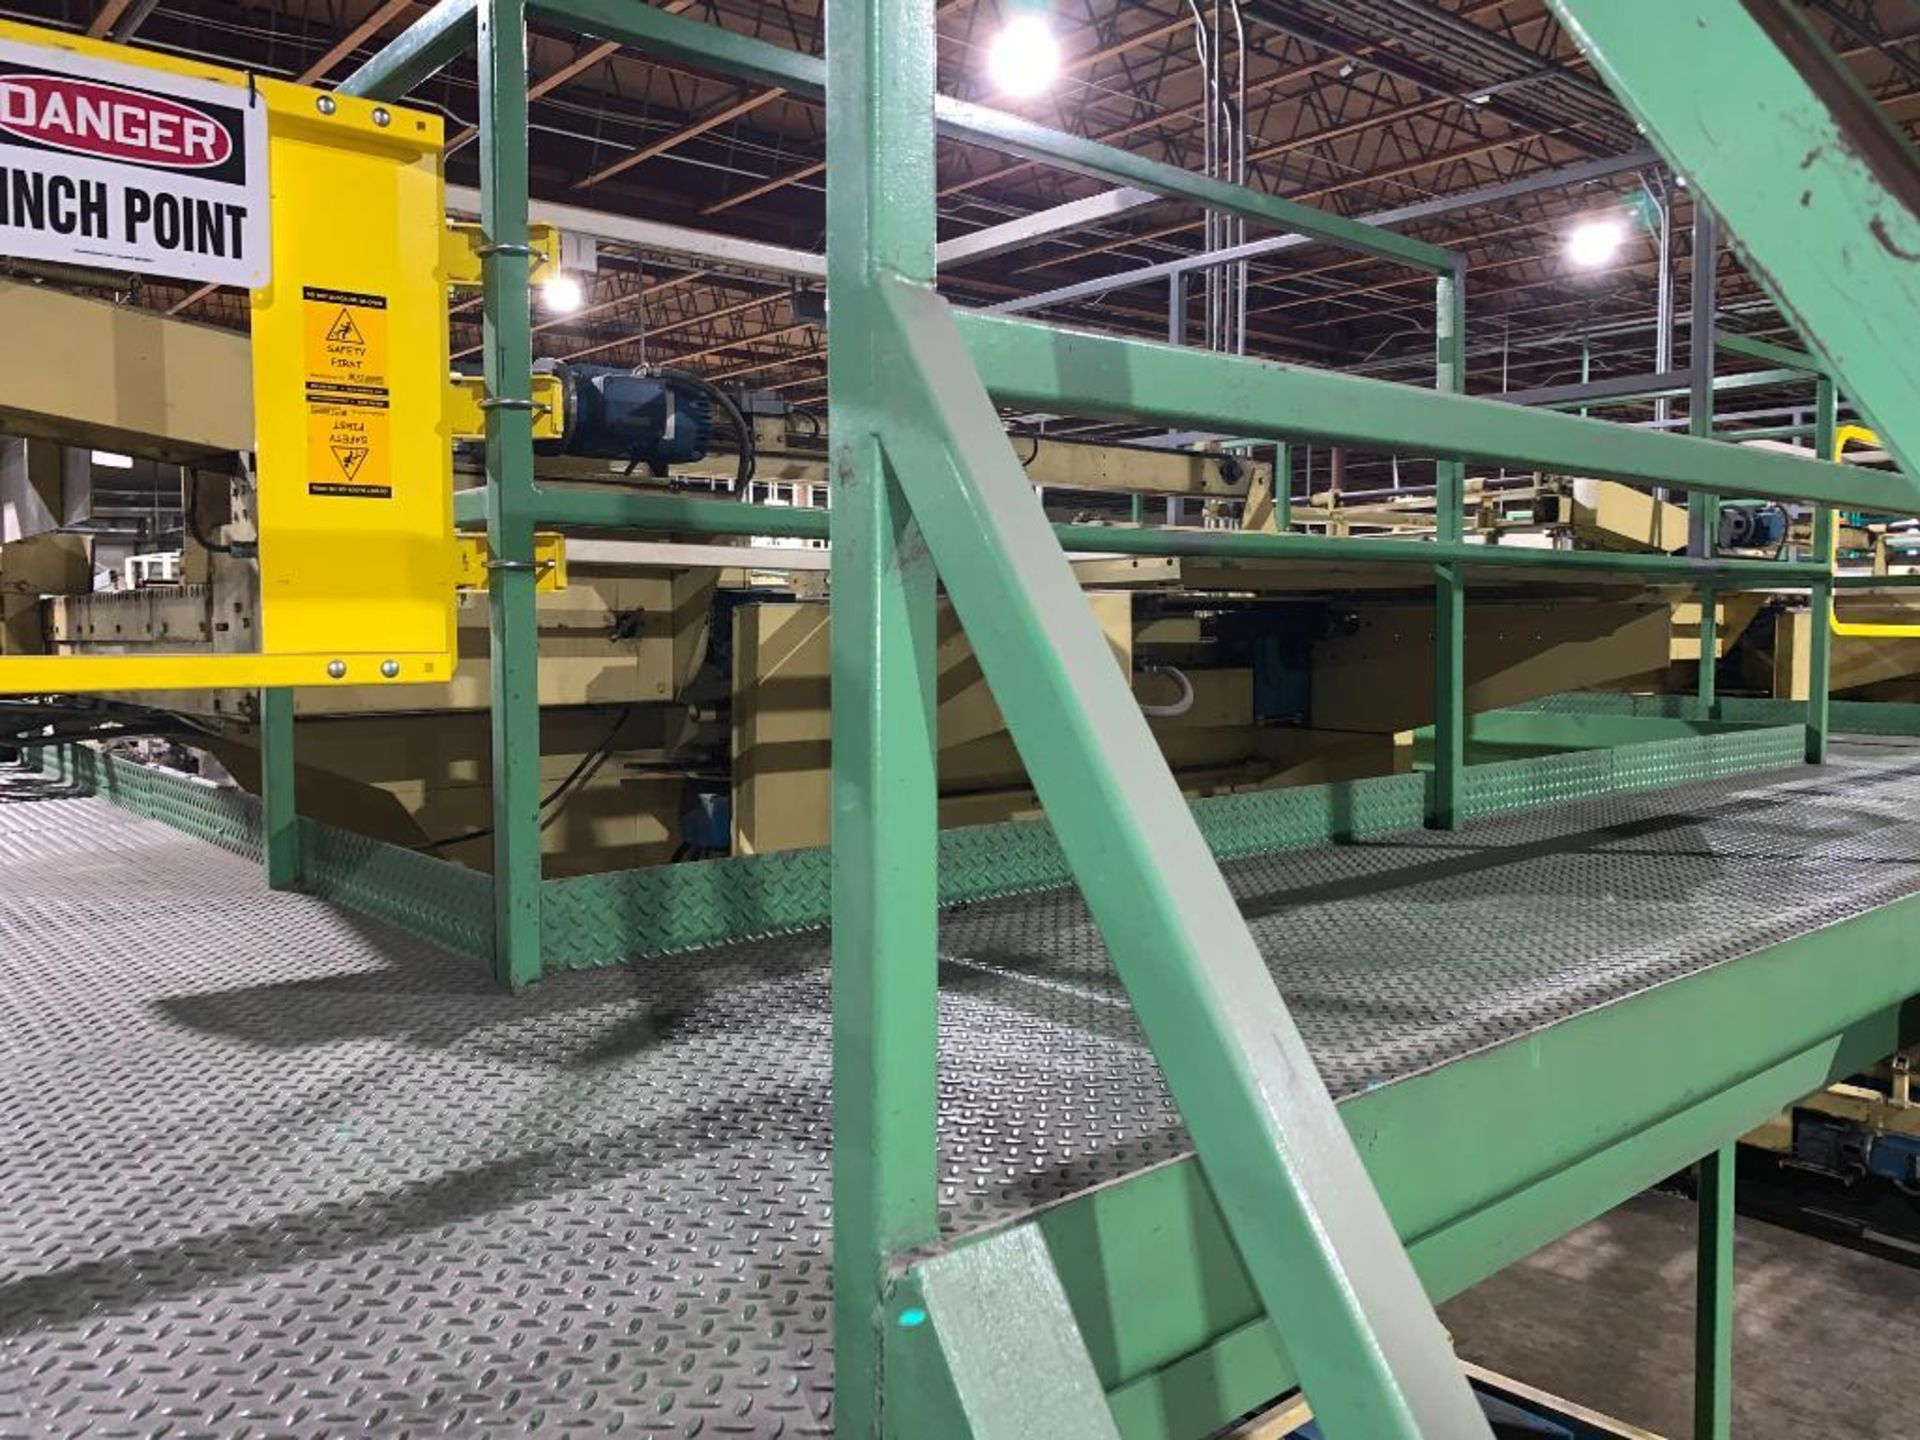 1992 Currie top to bottom palletizer, machine number LSP-5-1176 - Image 44 of 56